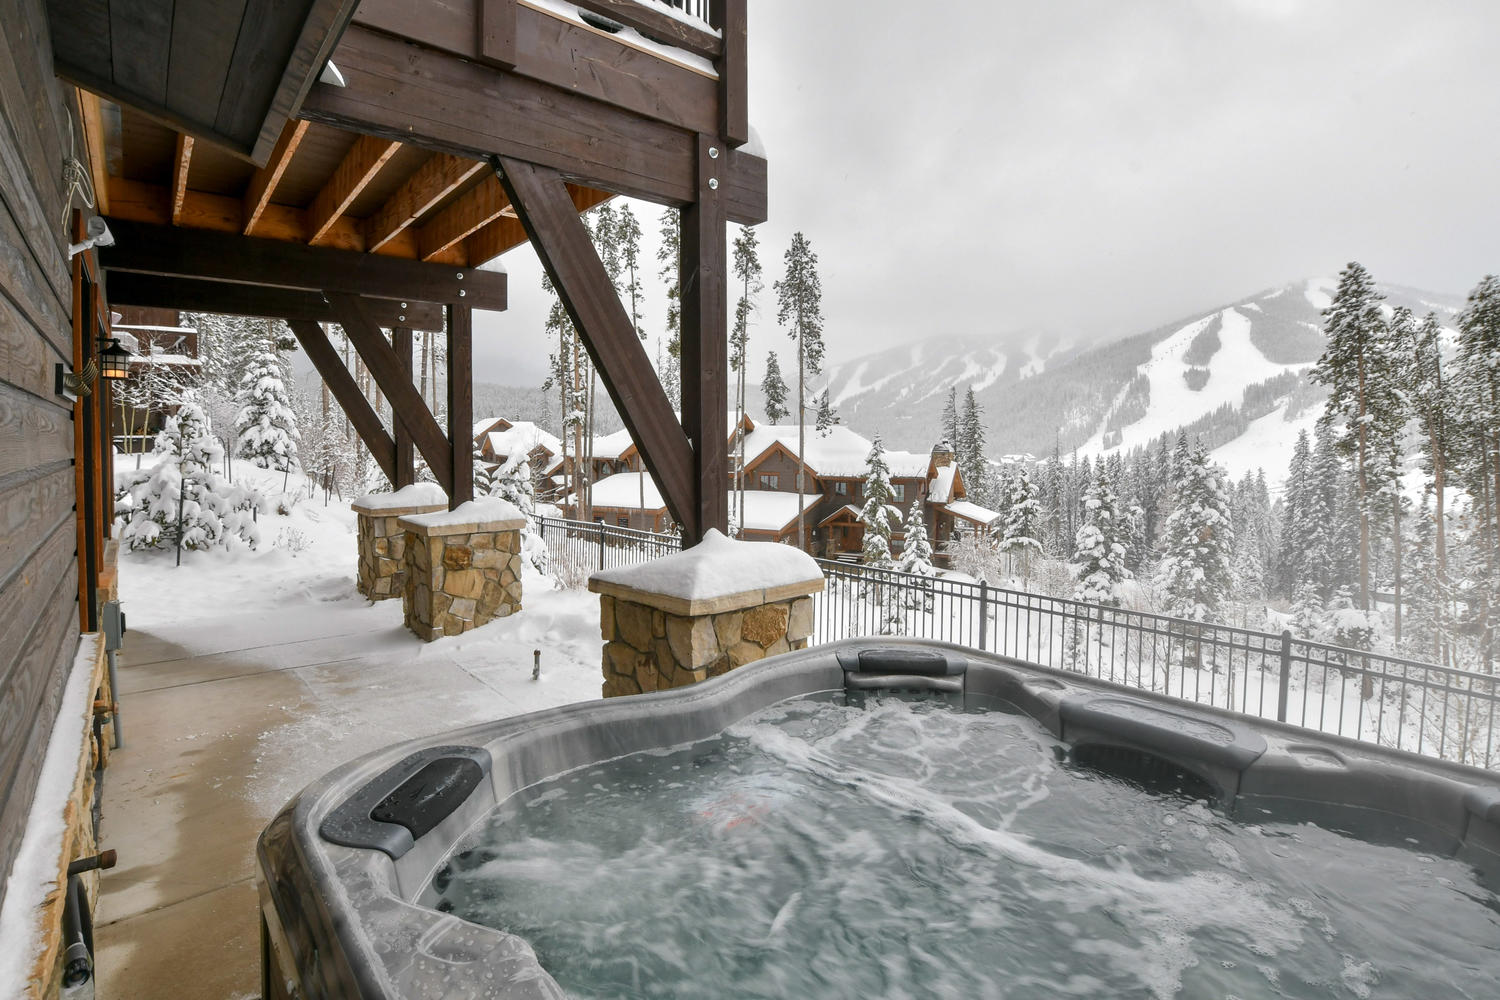 Large private hot tub with amazing ski resort views